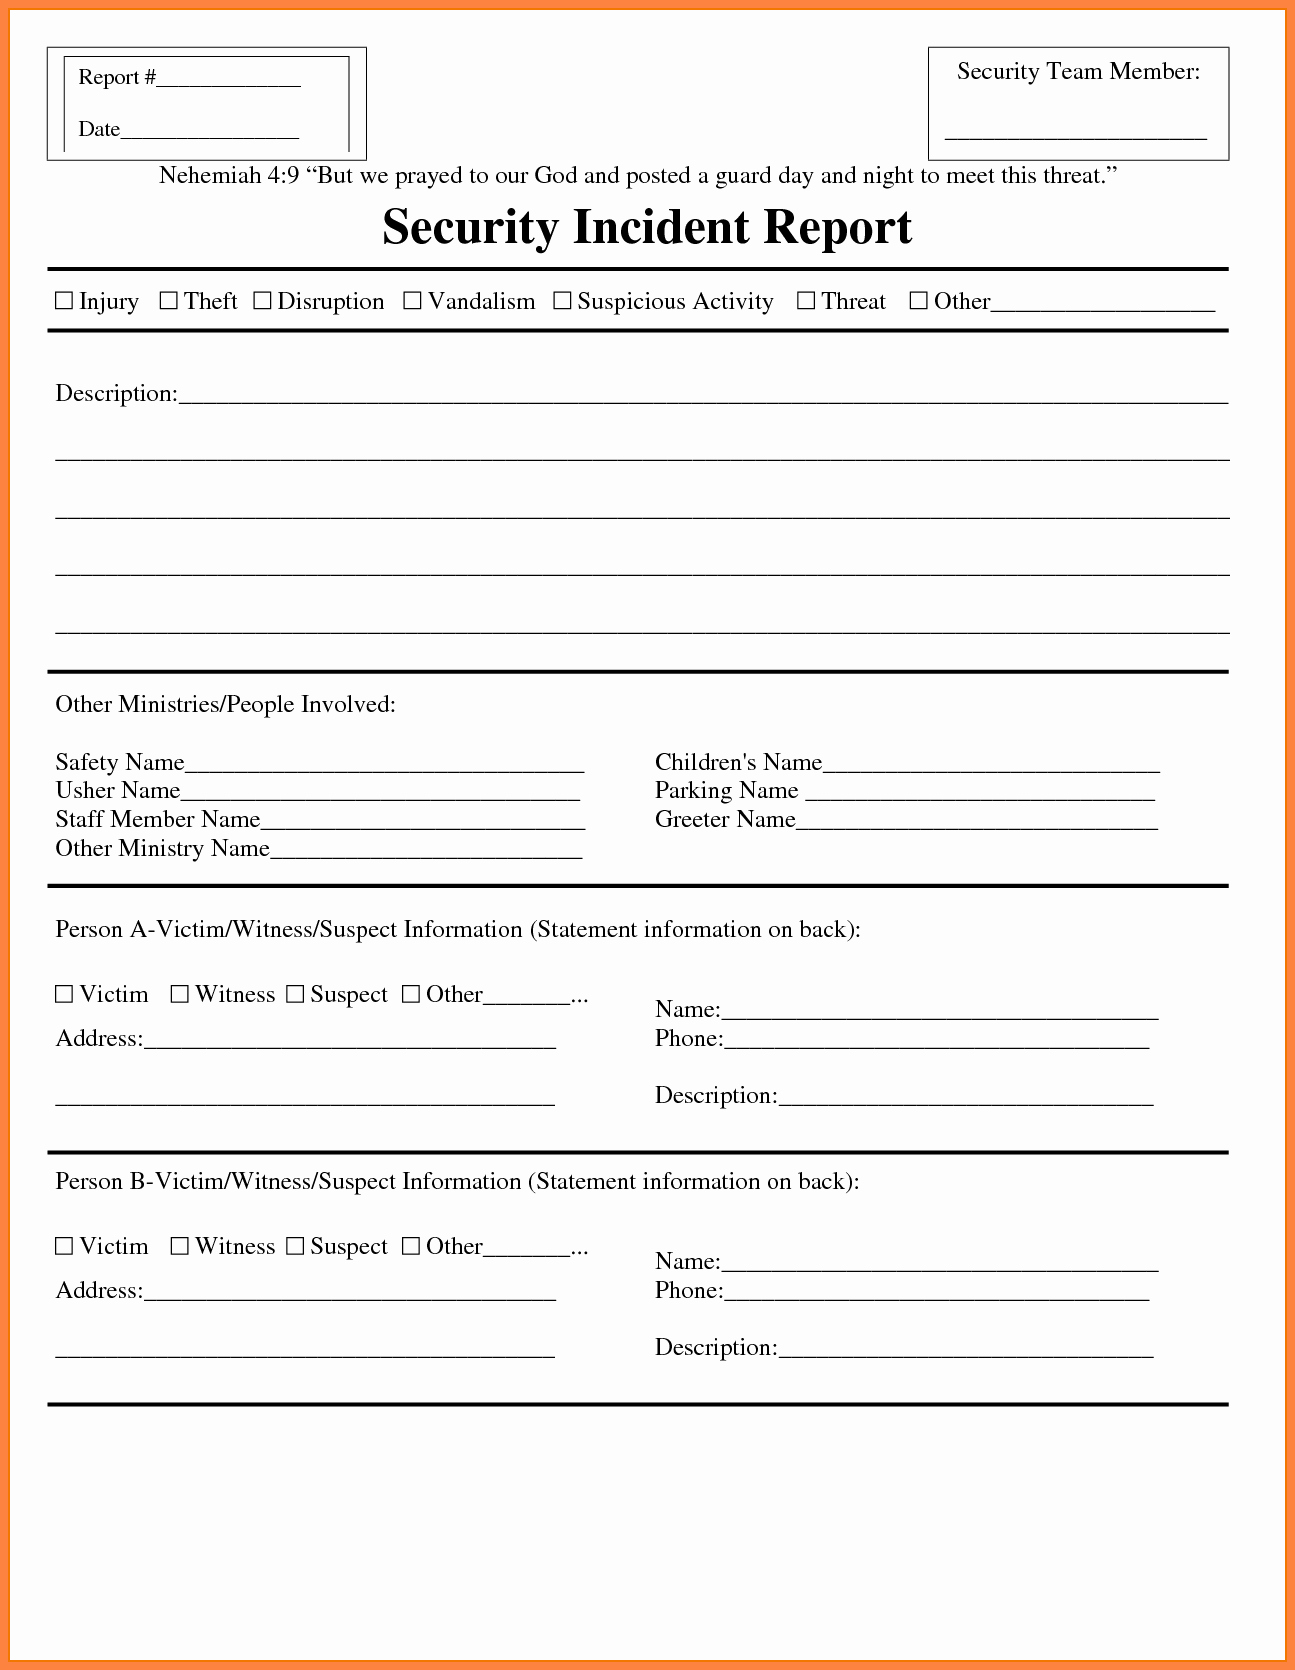 Security Guard Daily Activity Report Template Inspirational How to Write Security Ficer Incident Report How to